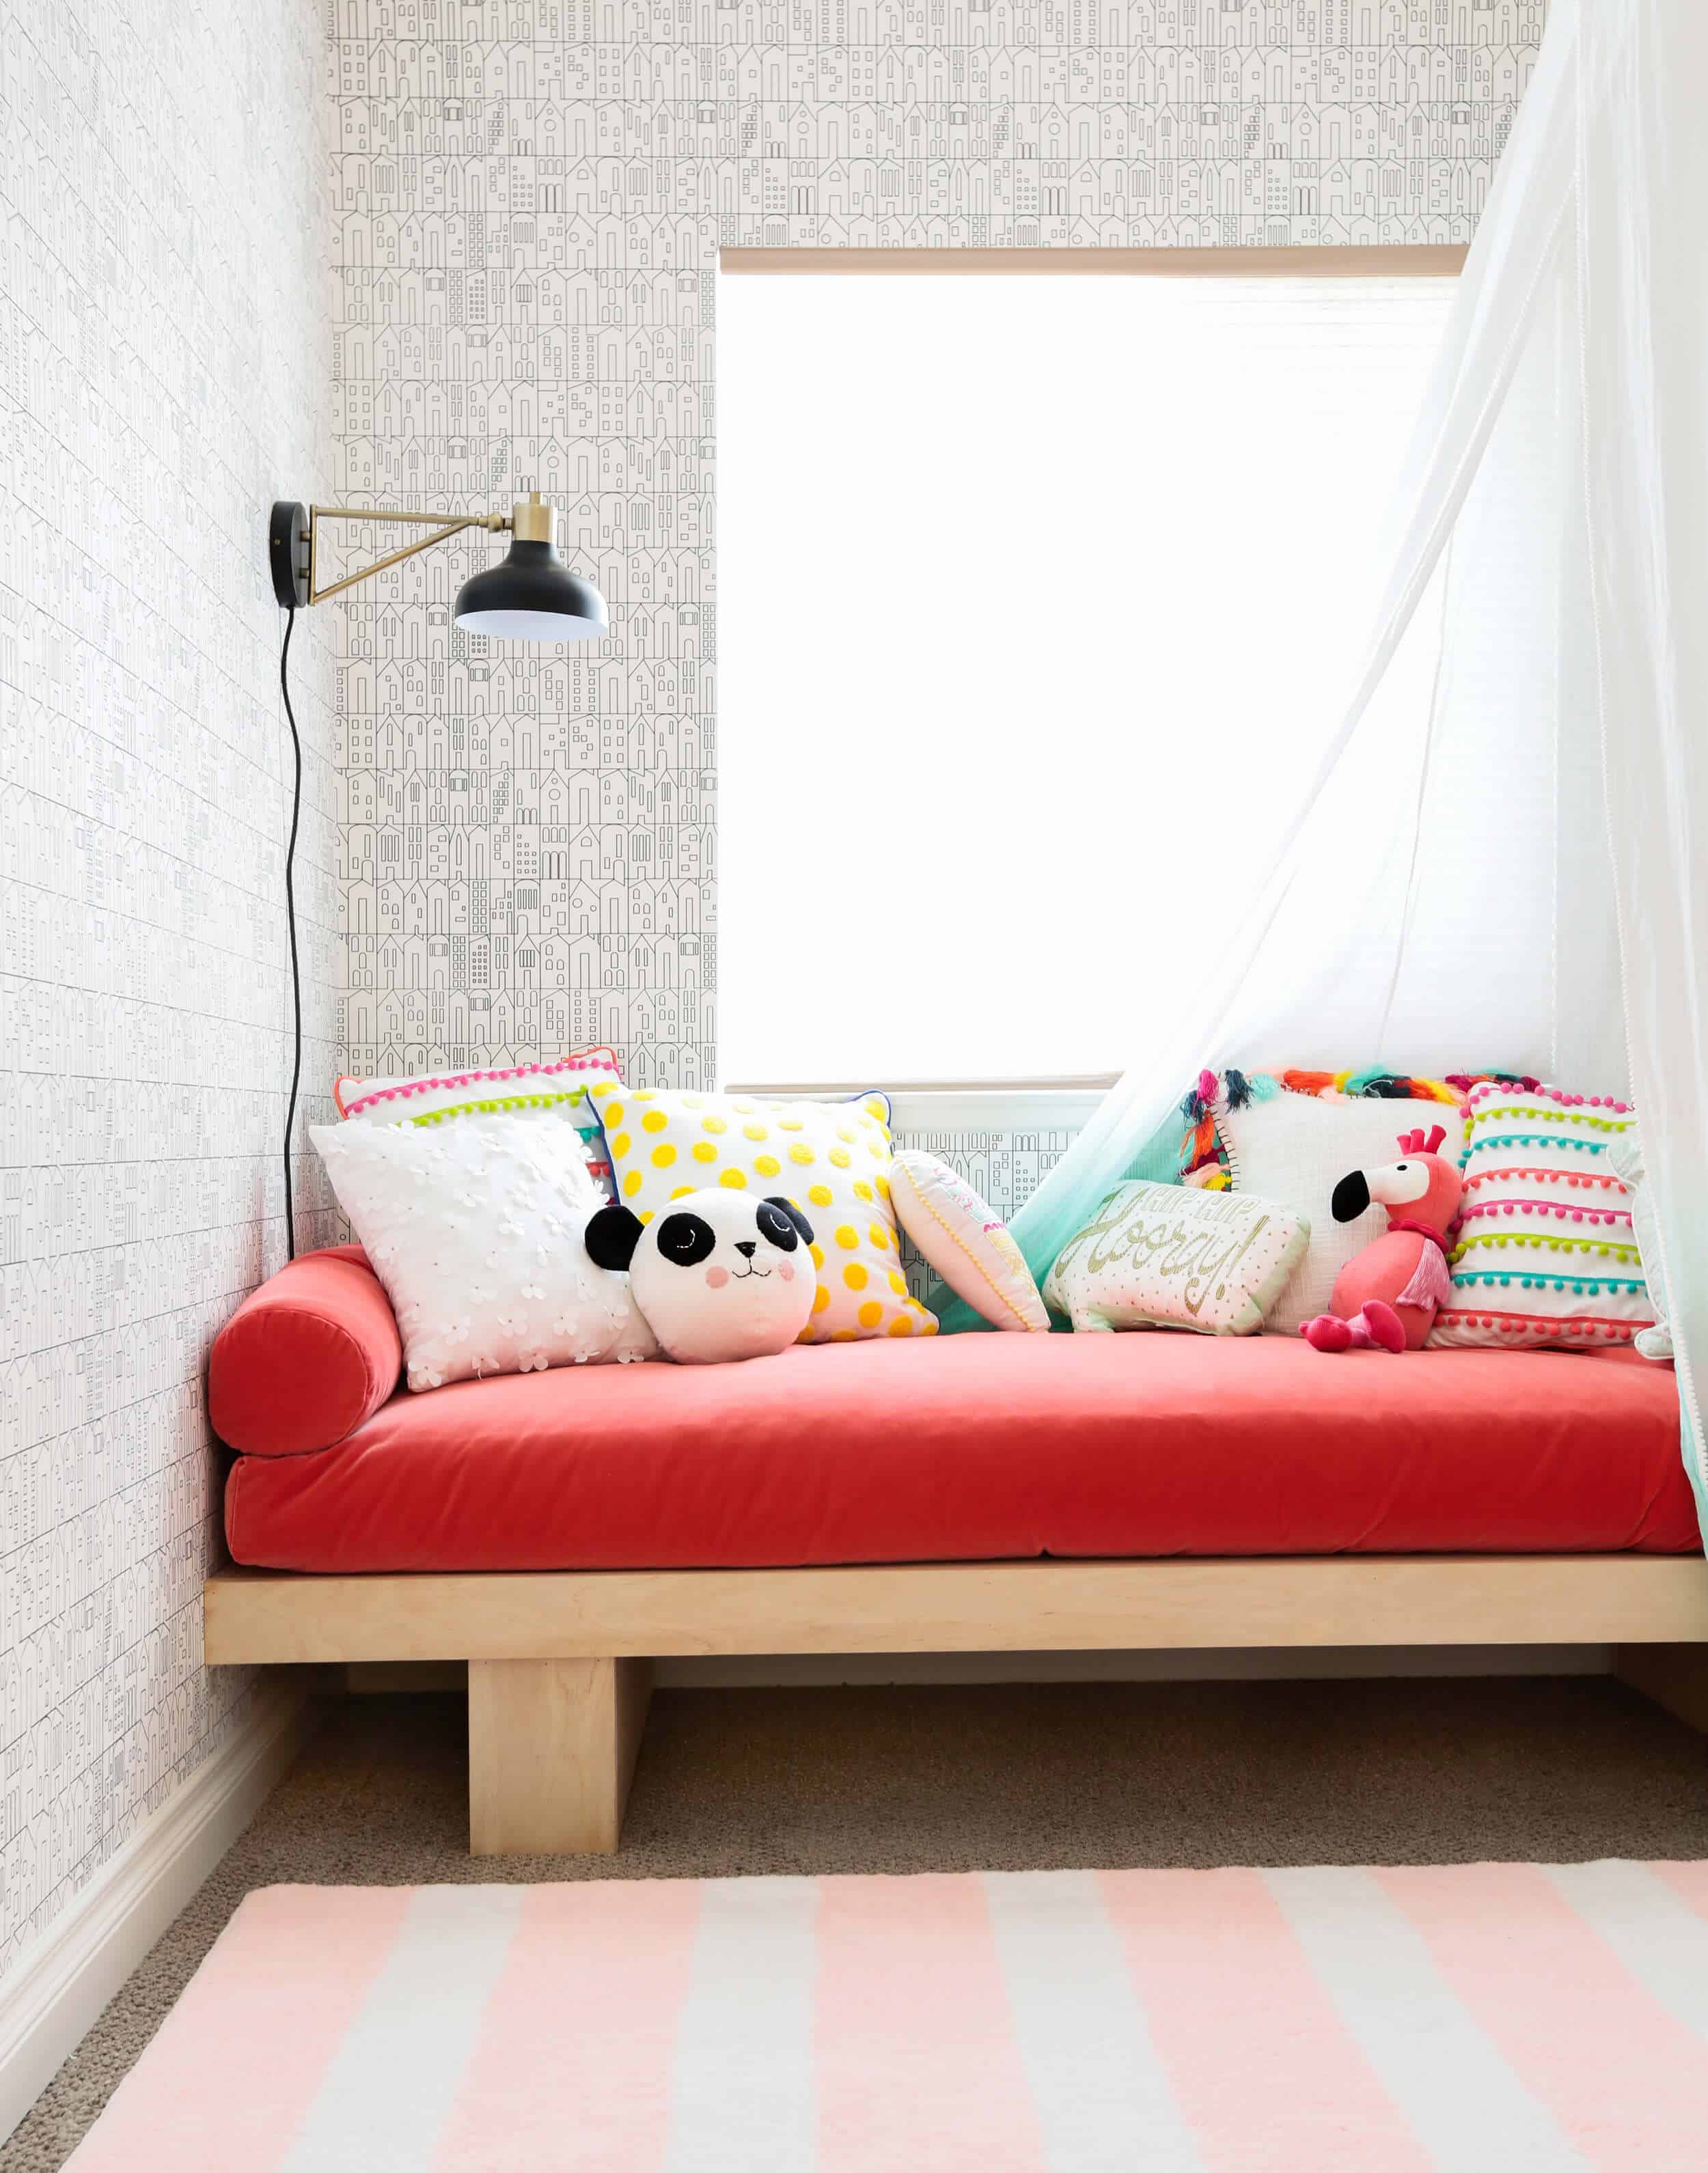 - A Roundup Of 36 Of Our Favorite Daybeds - Emily Henderson